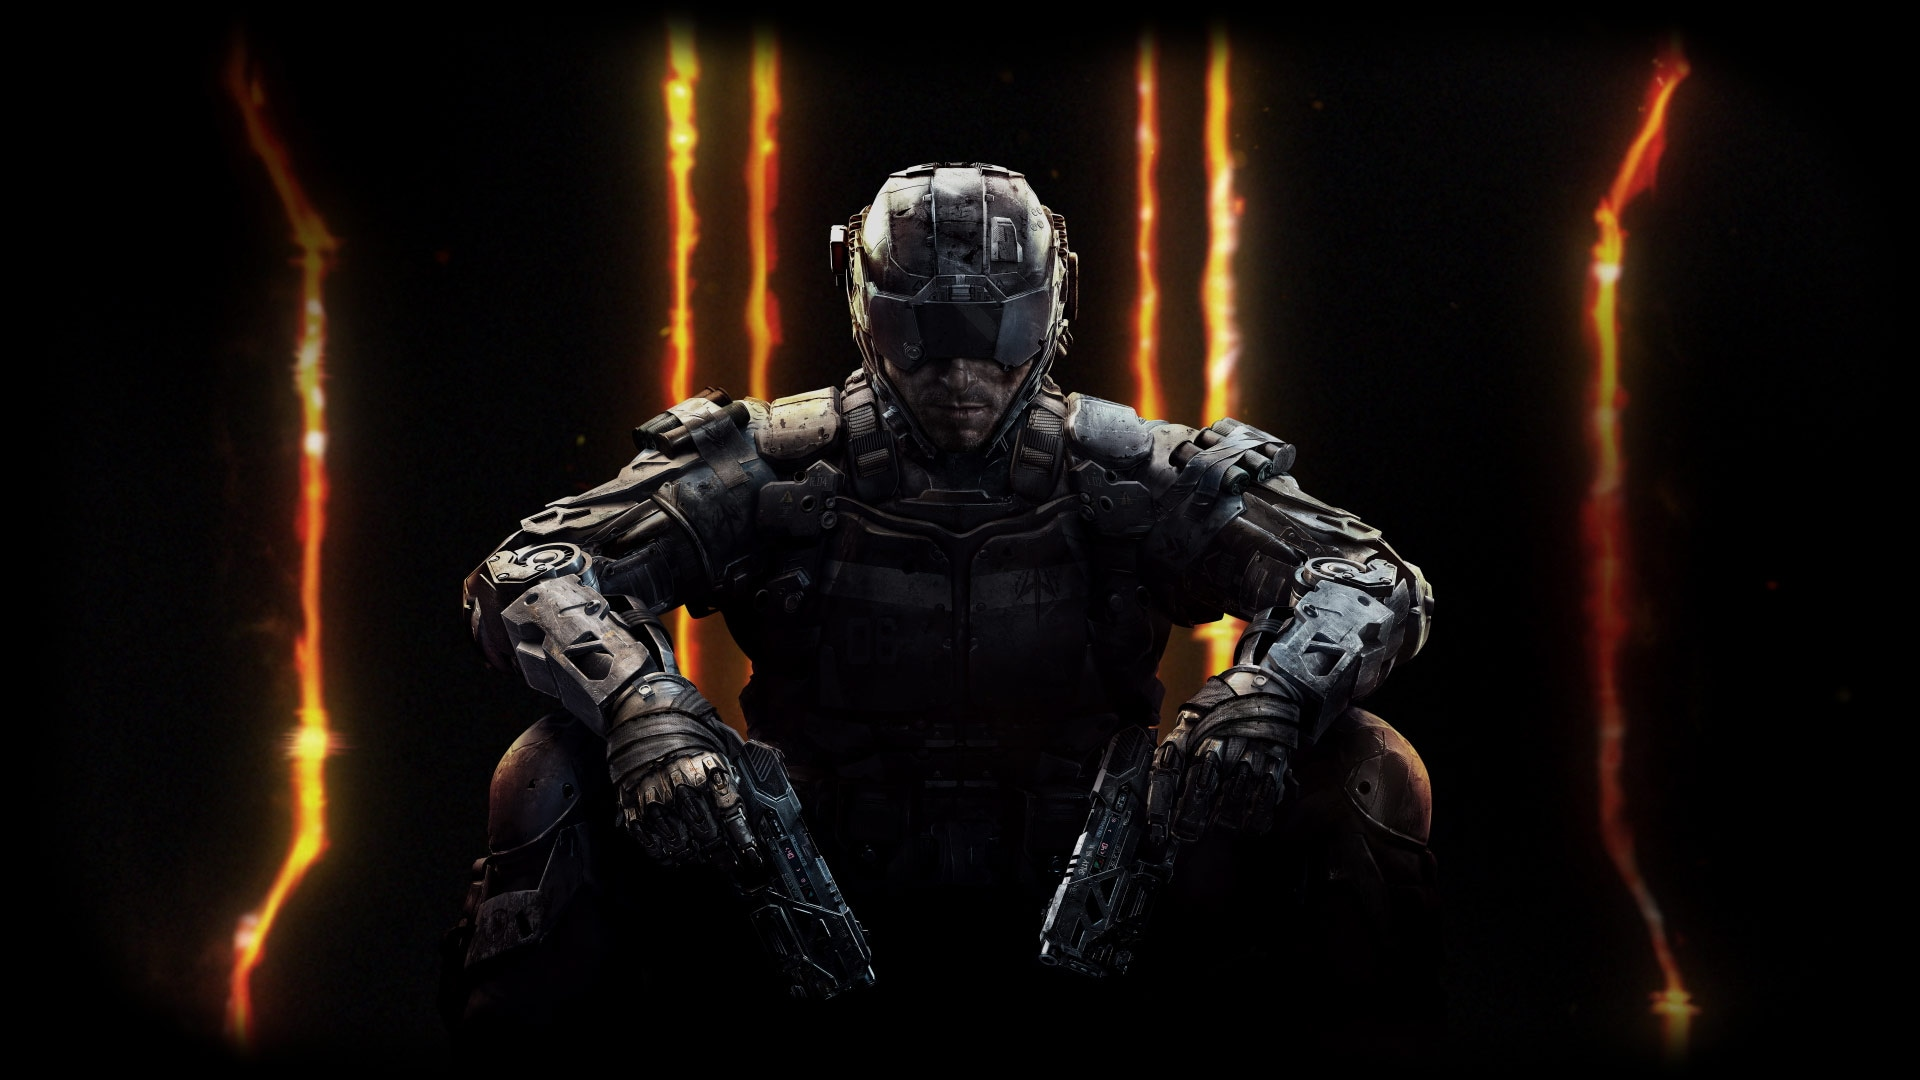 Cover art for Call of Duty: Black Ops 3. (Courtesy/ Call of Duty ).